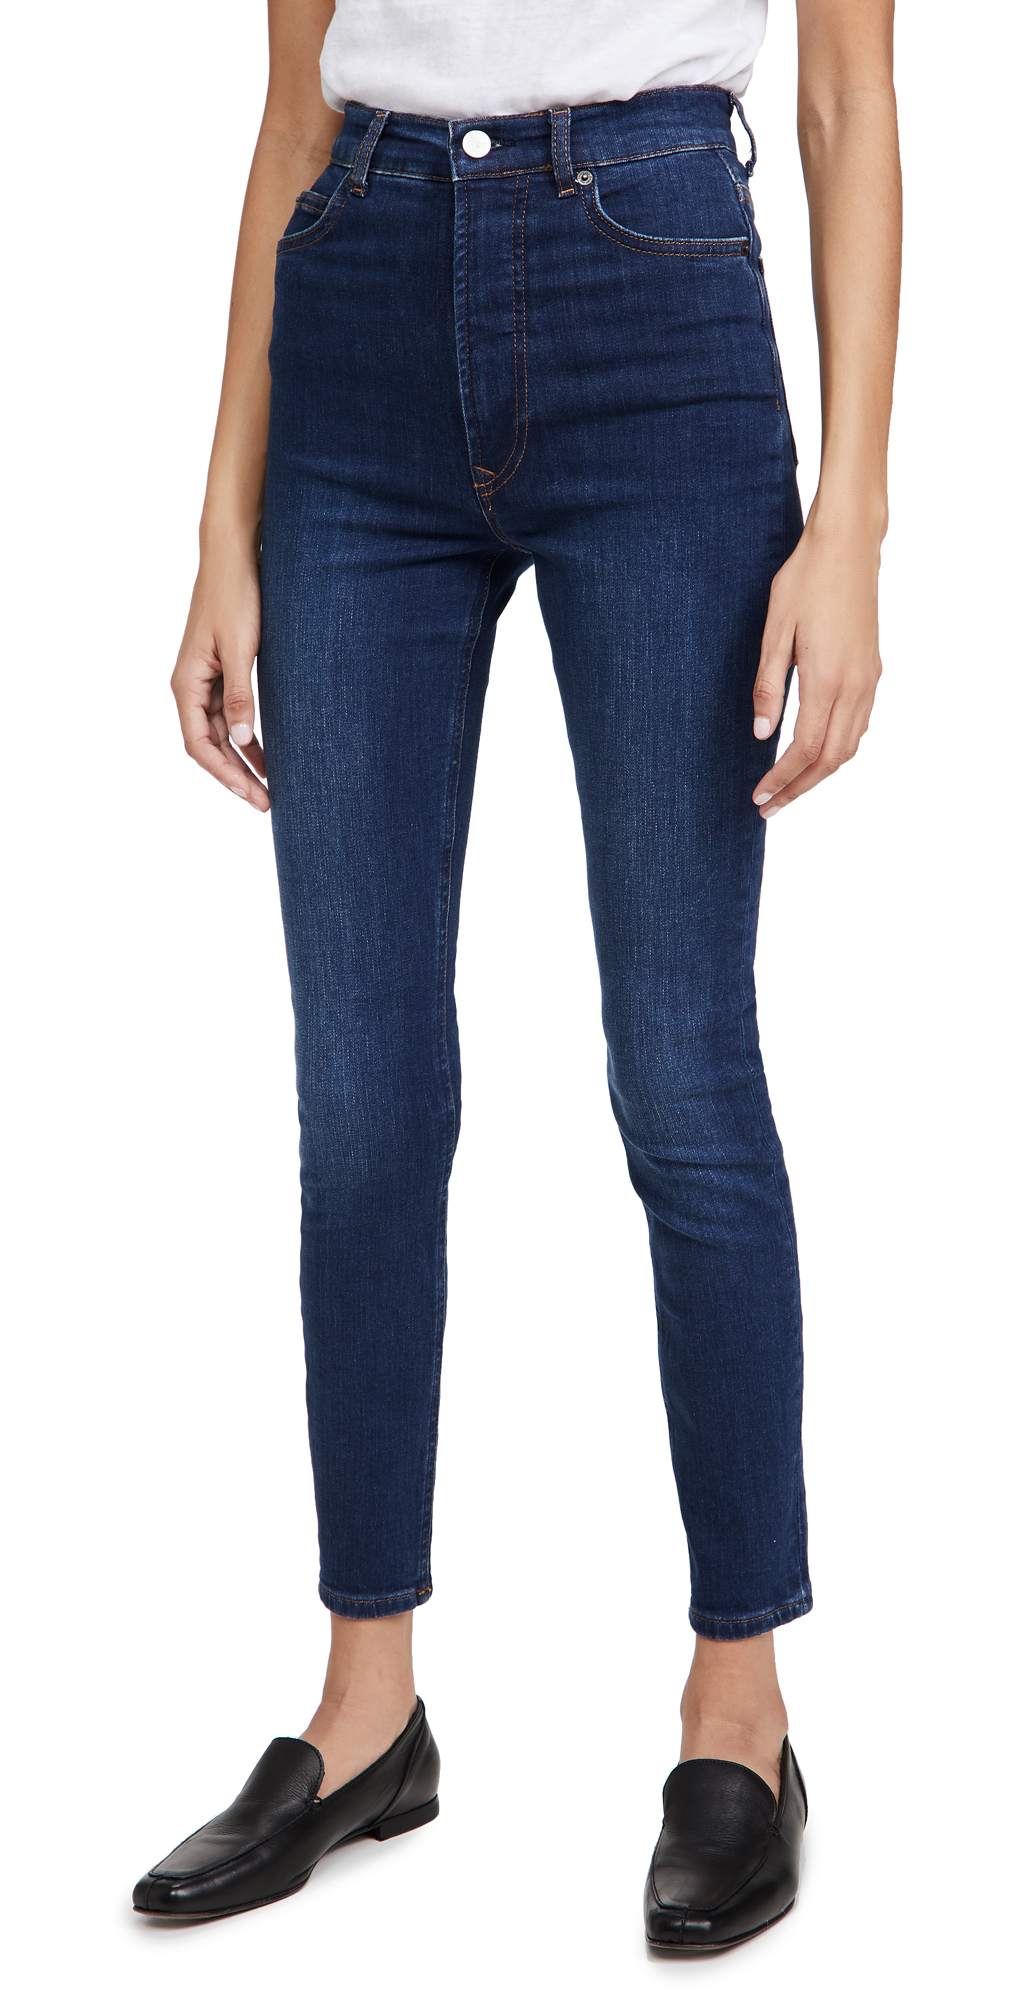 Reformation Harper Ultra High Rise Skinny Jeans